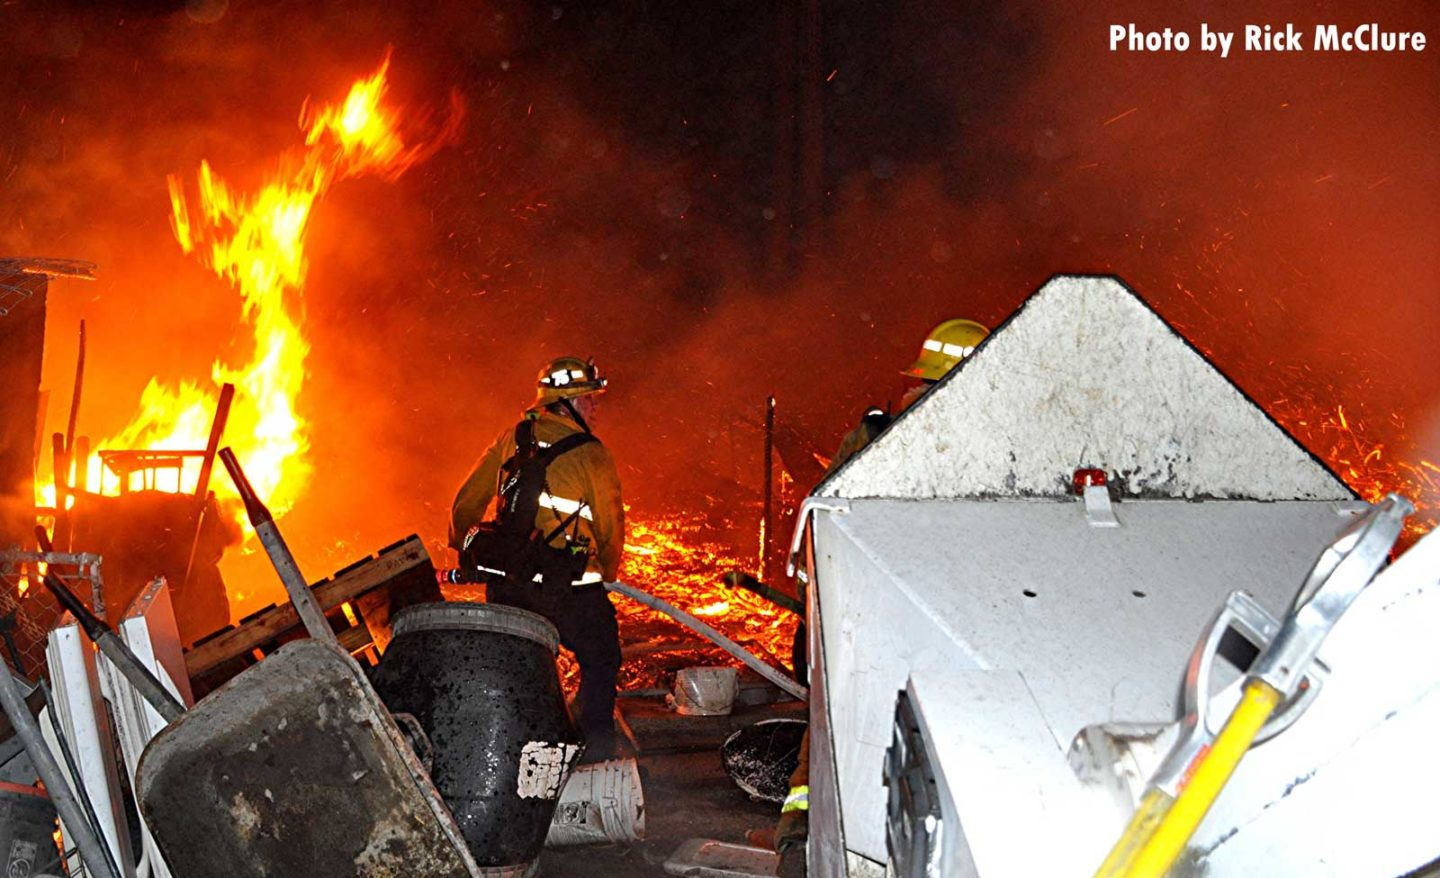 City of Los Angeles firefighter with a hoseline and flames